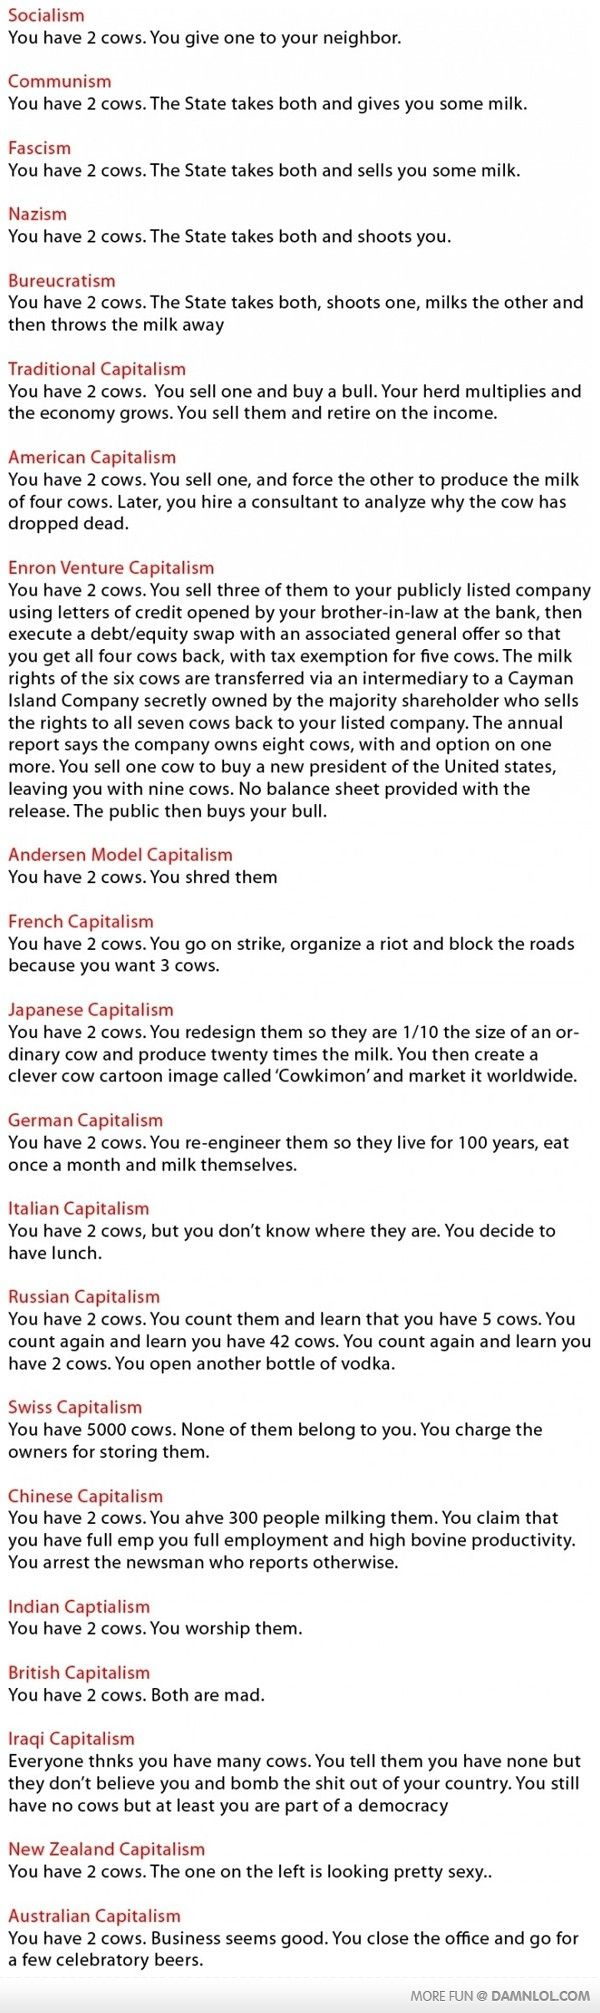 World Economic Model. Unit: Cows Not saying that I fully agree...but a lot of it was funny.